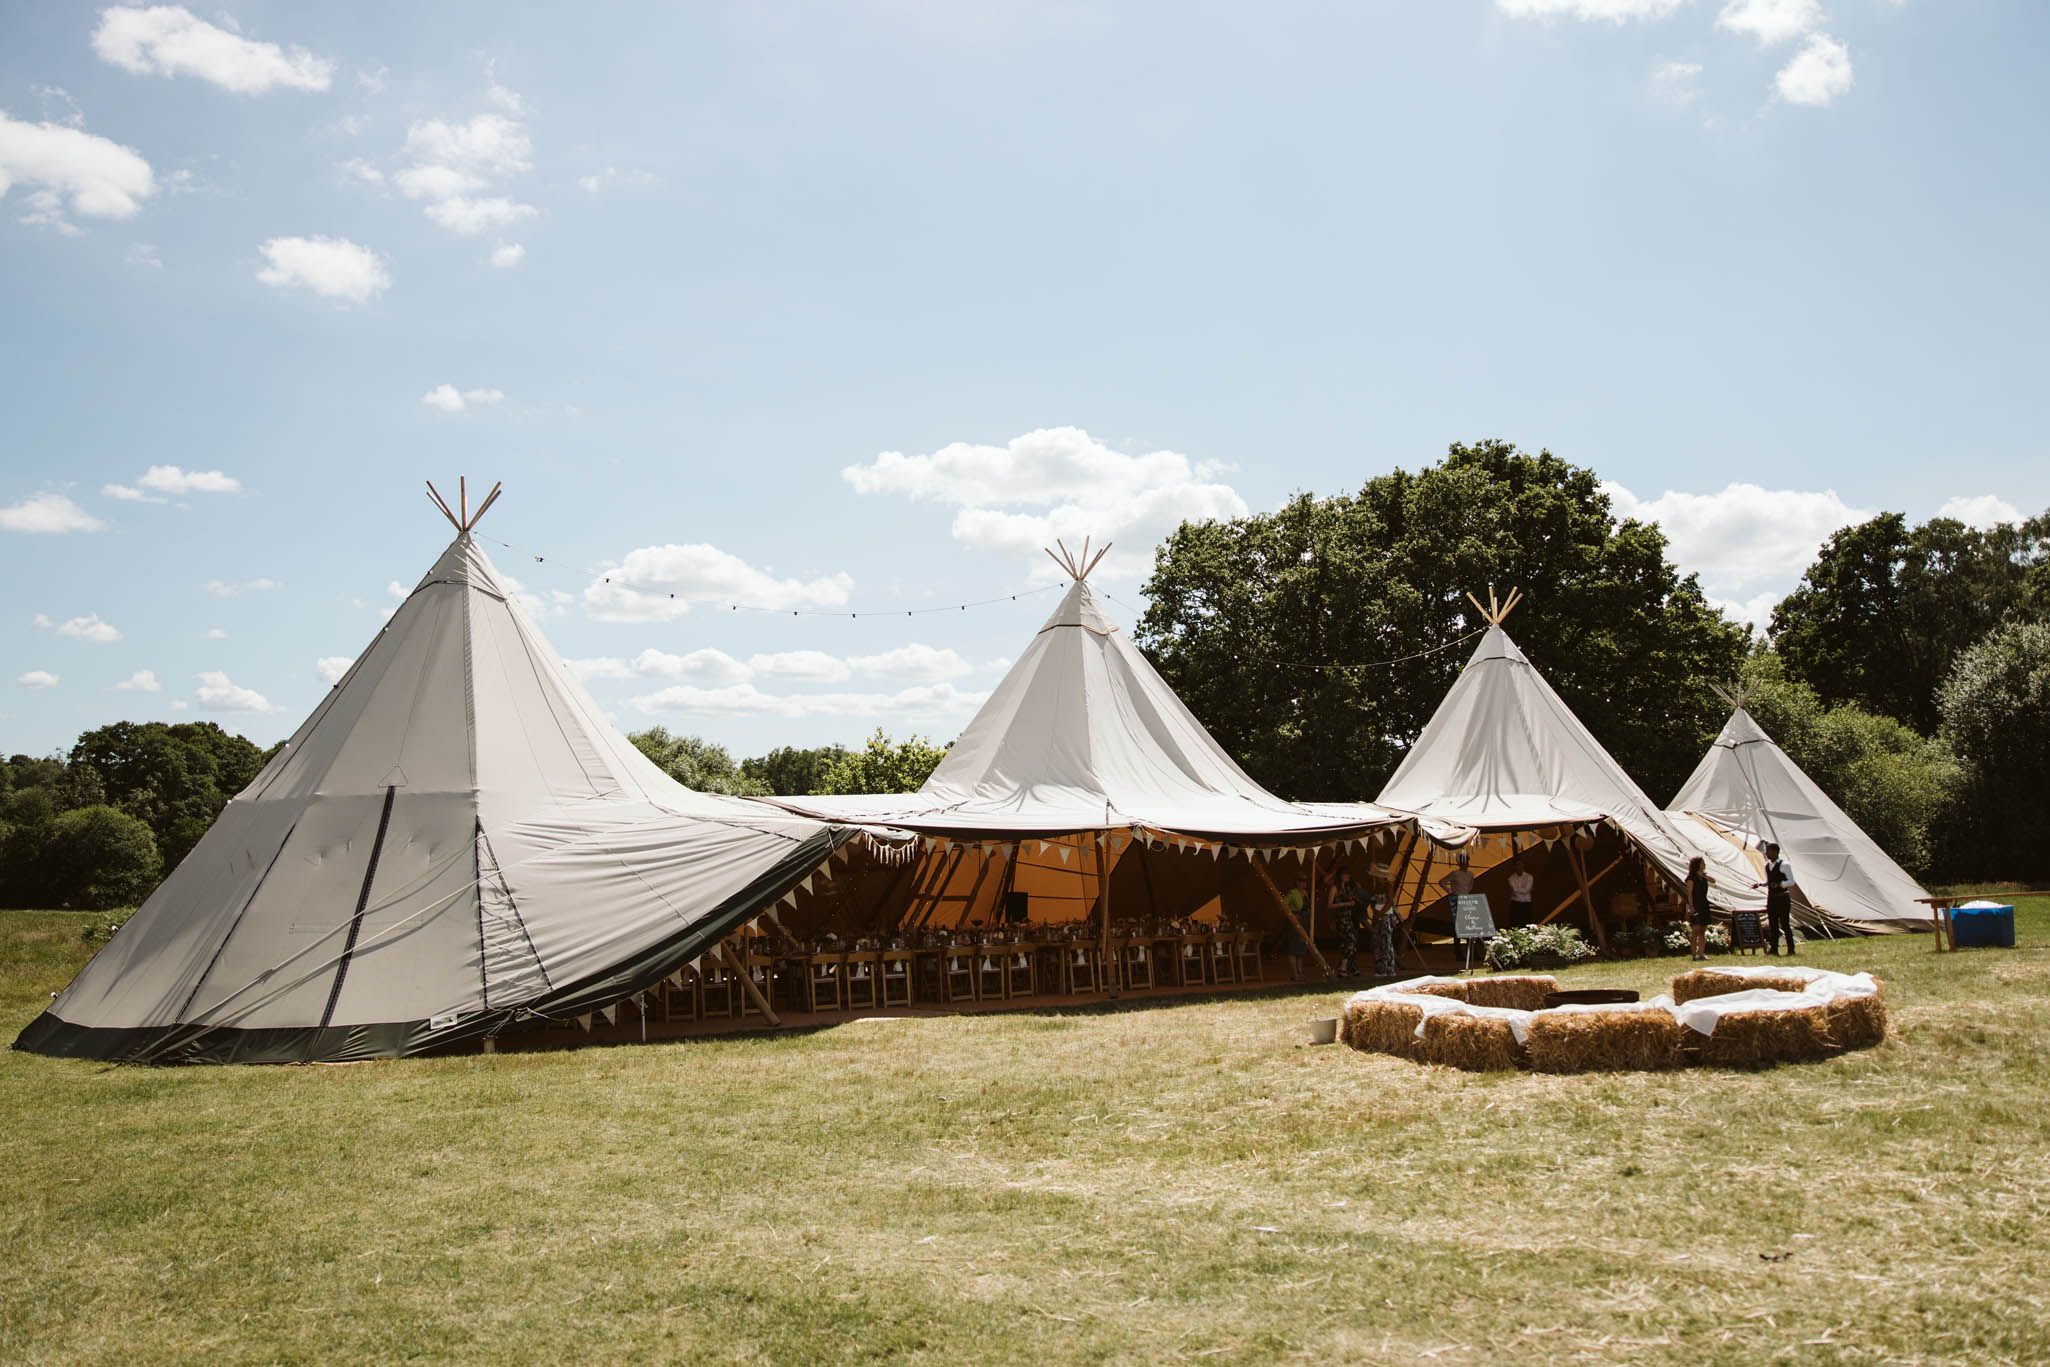 off-white tipis in a field